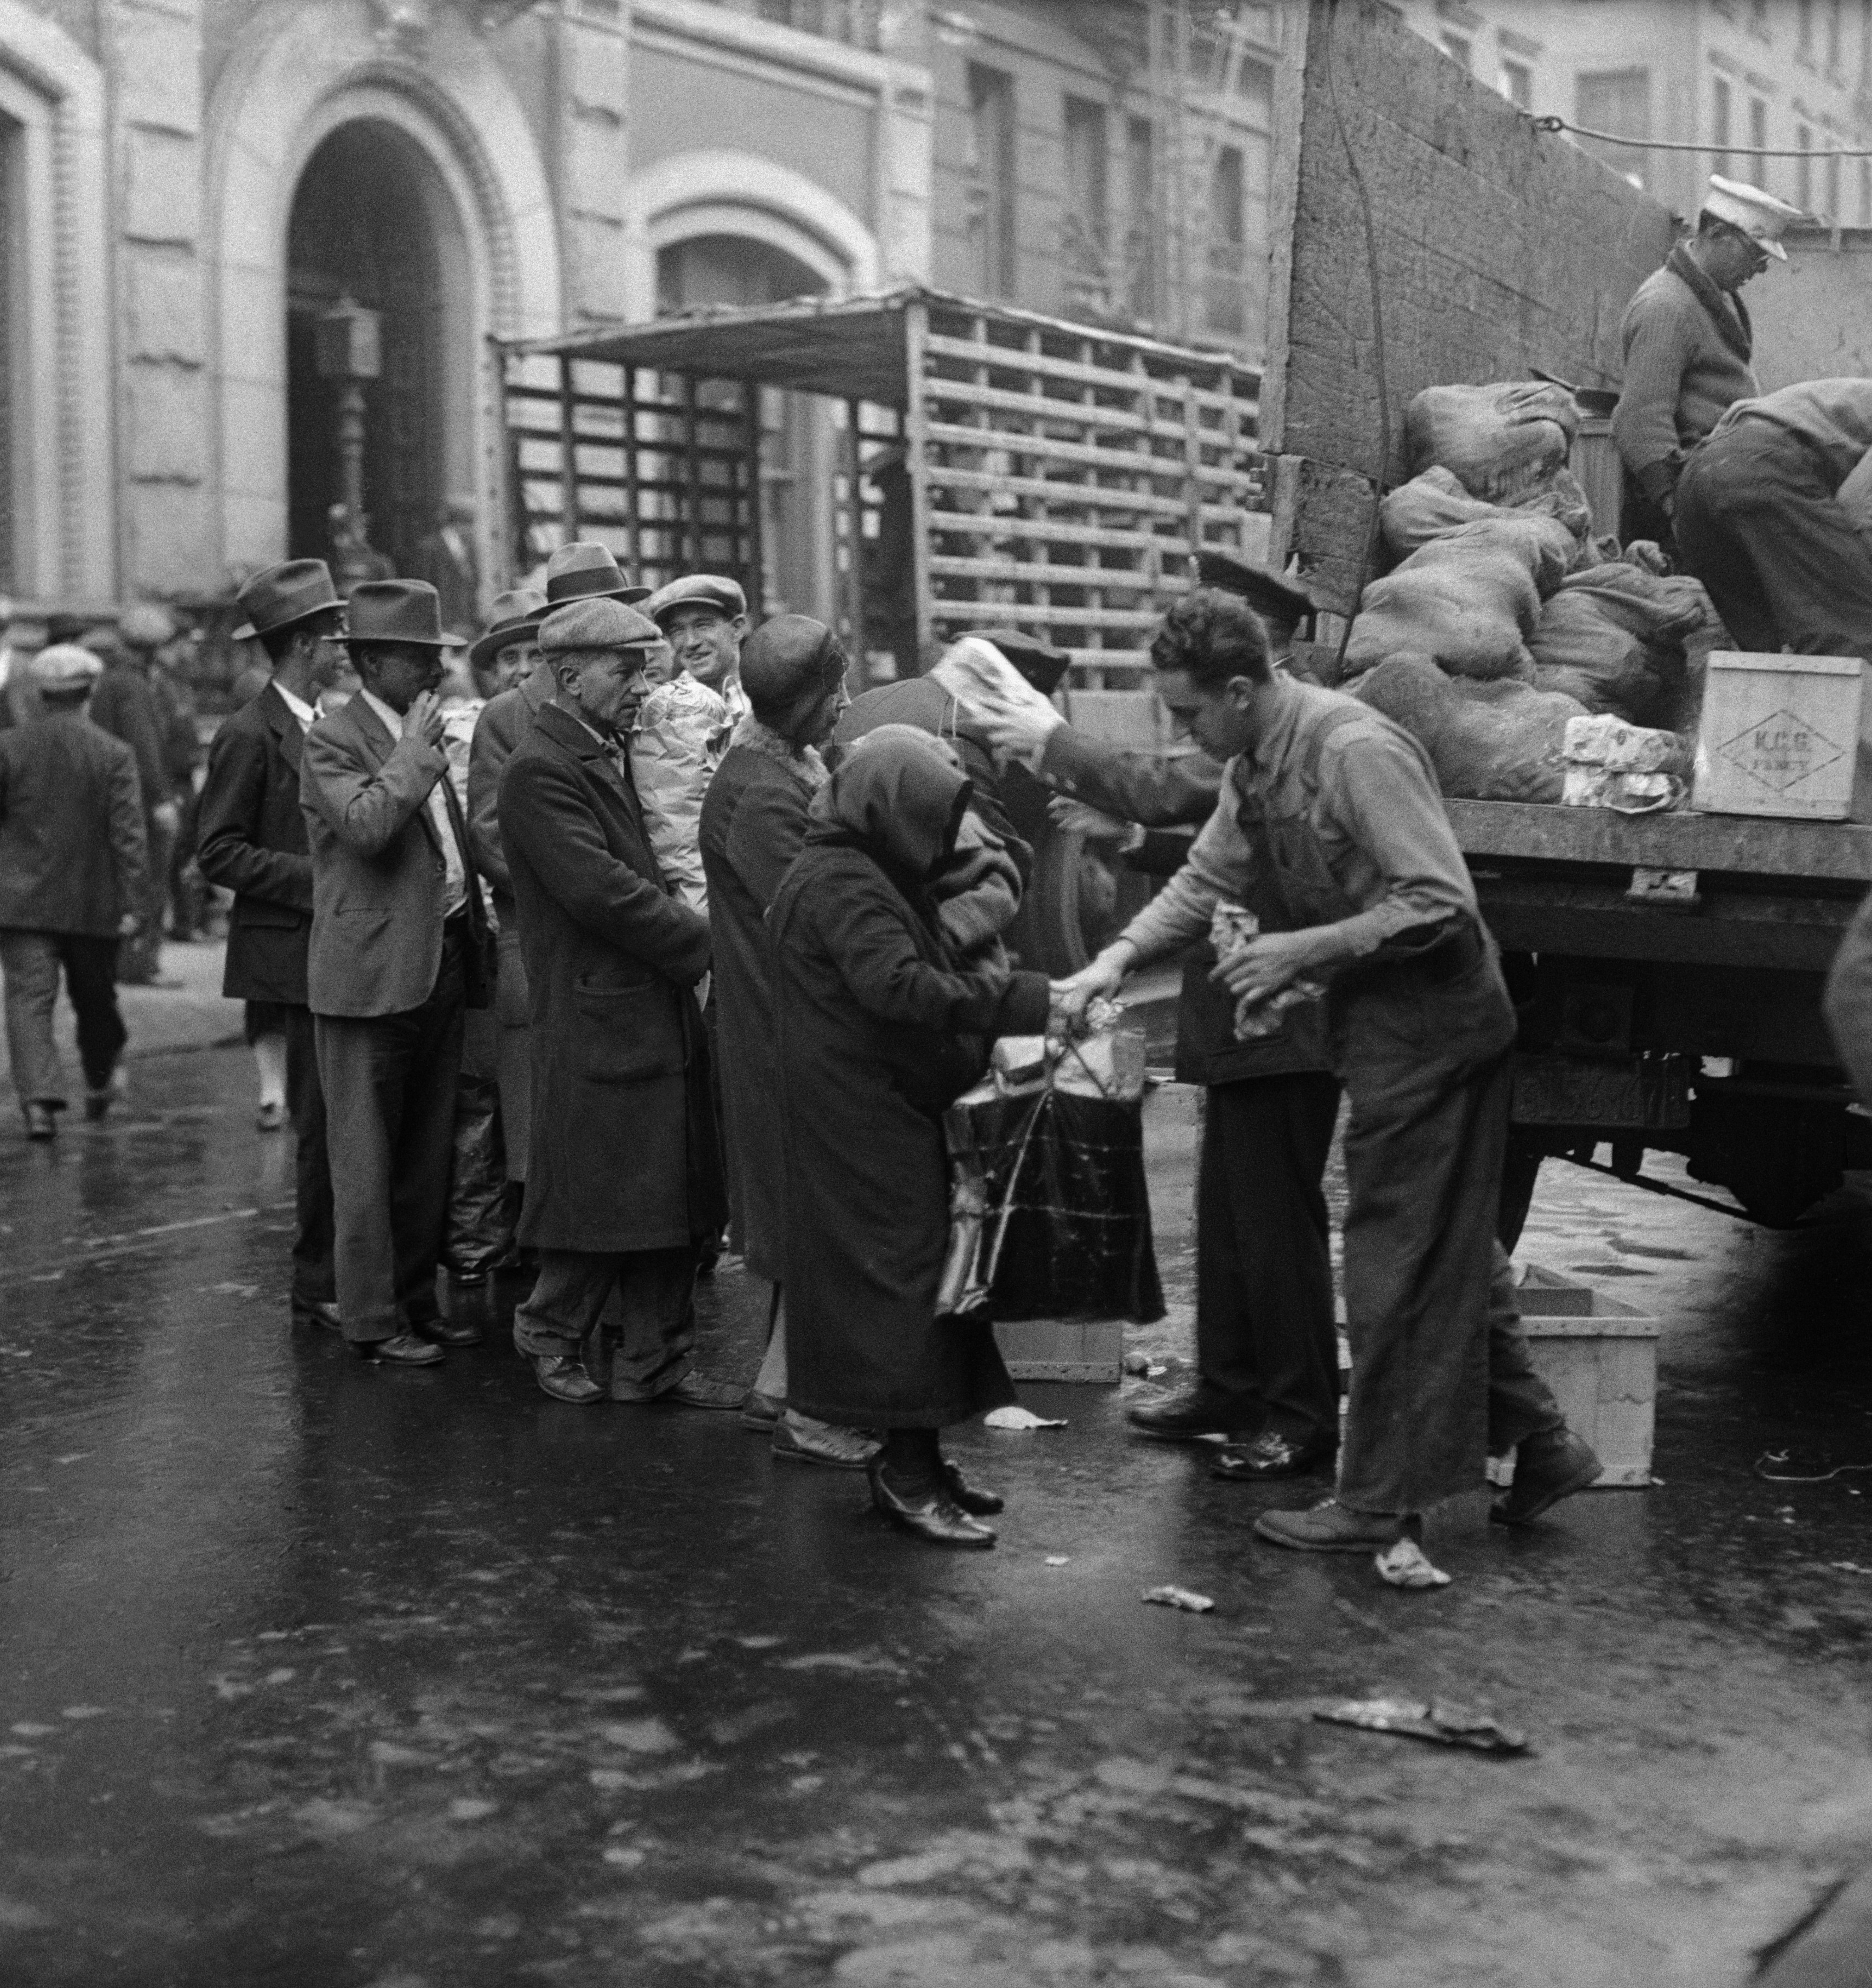 soup kitchens and breadlines pictures the great depression charities soup kitchens breadlines state officials federal officials the great depression